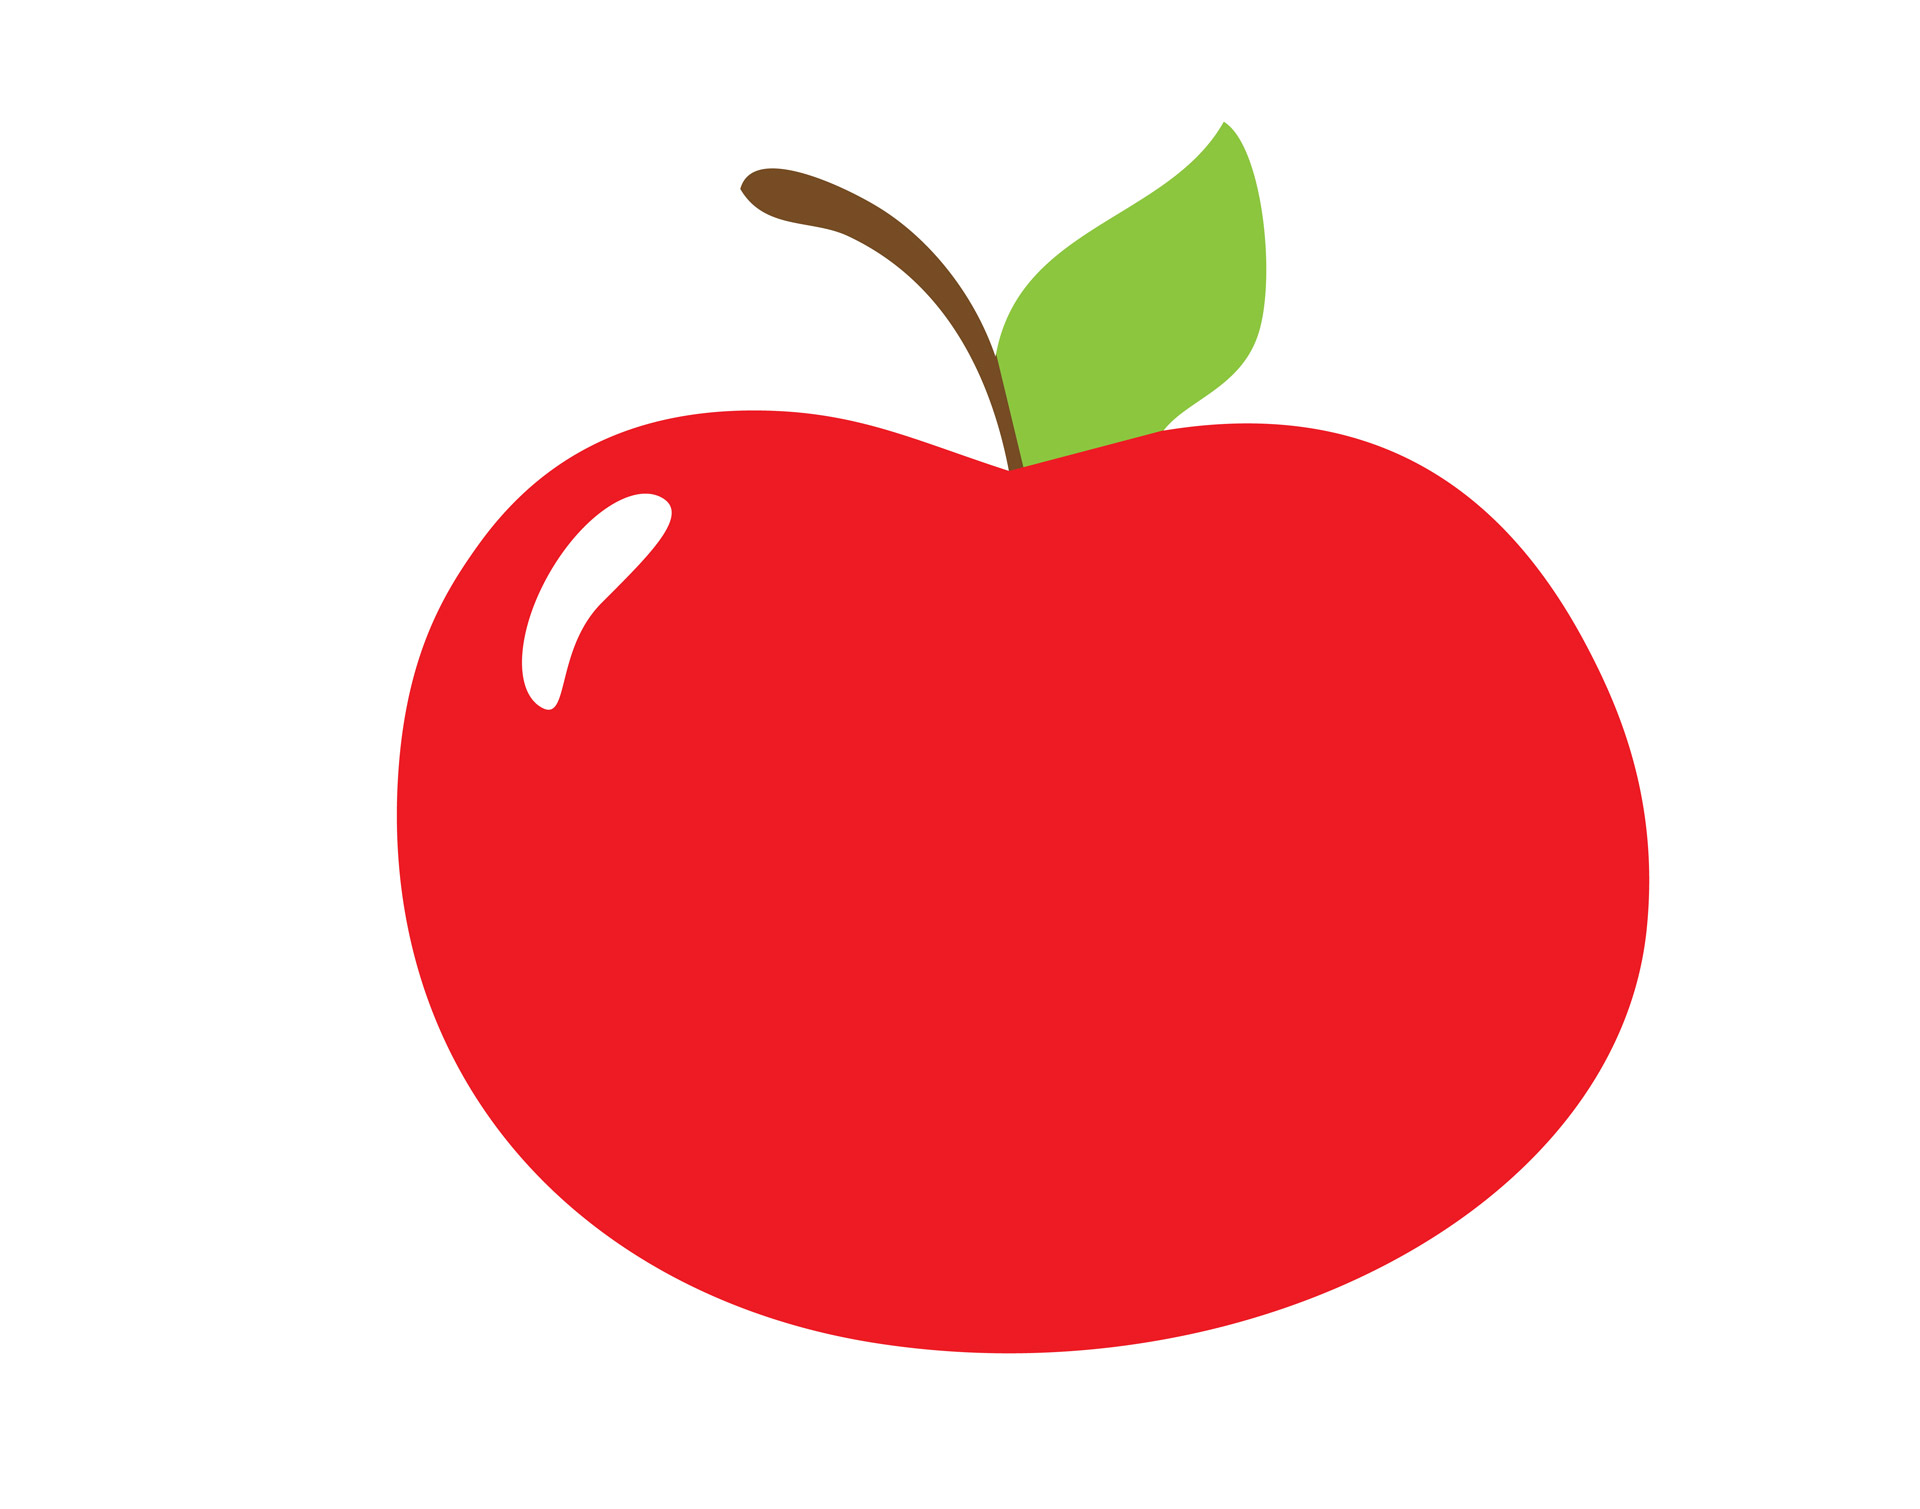 Red free stock photo. Apple apple clipart